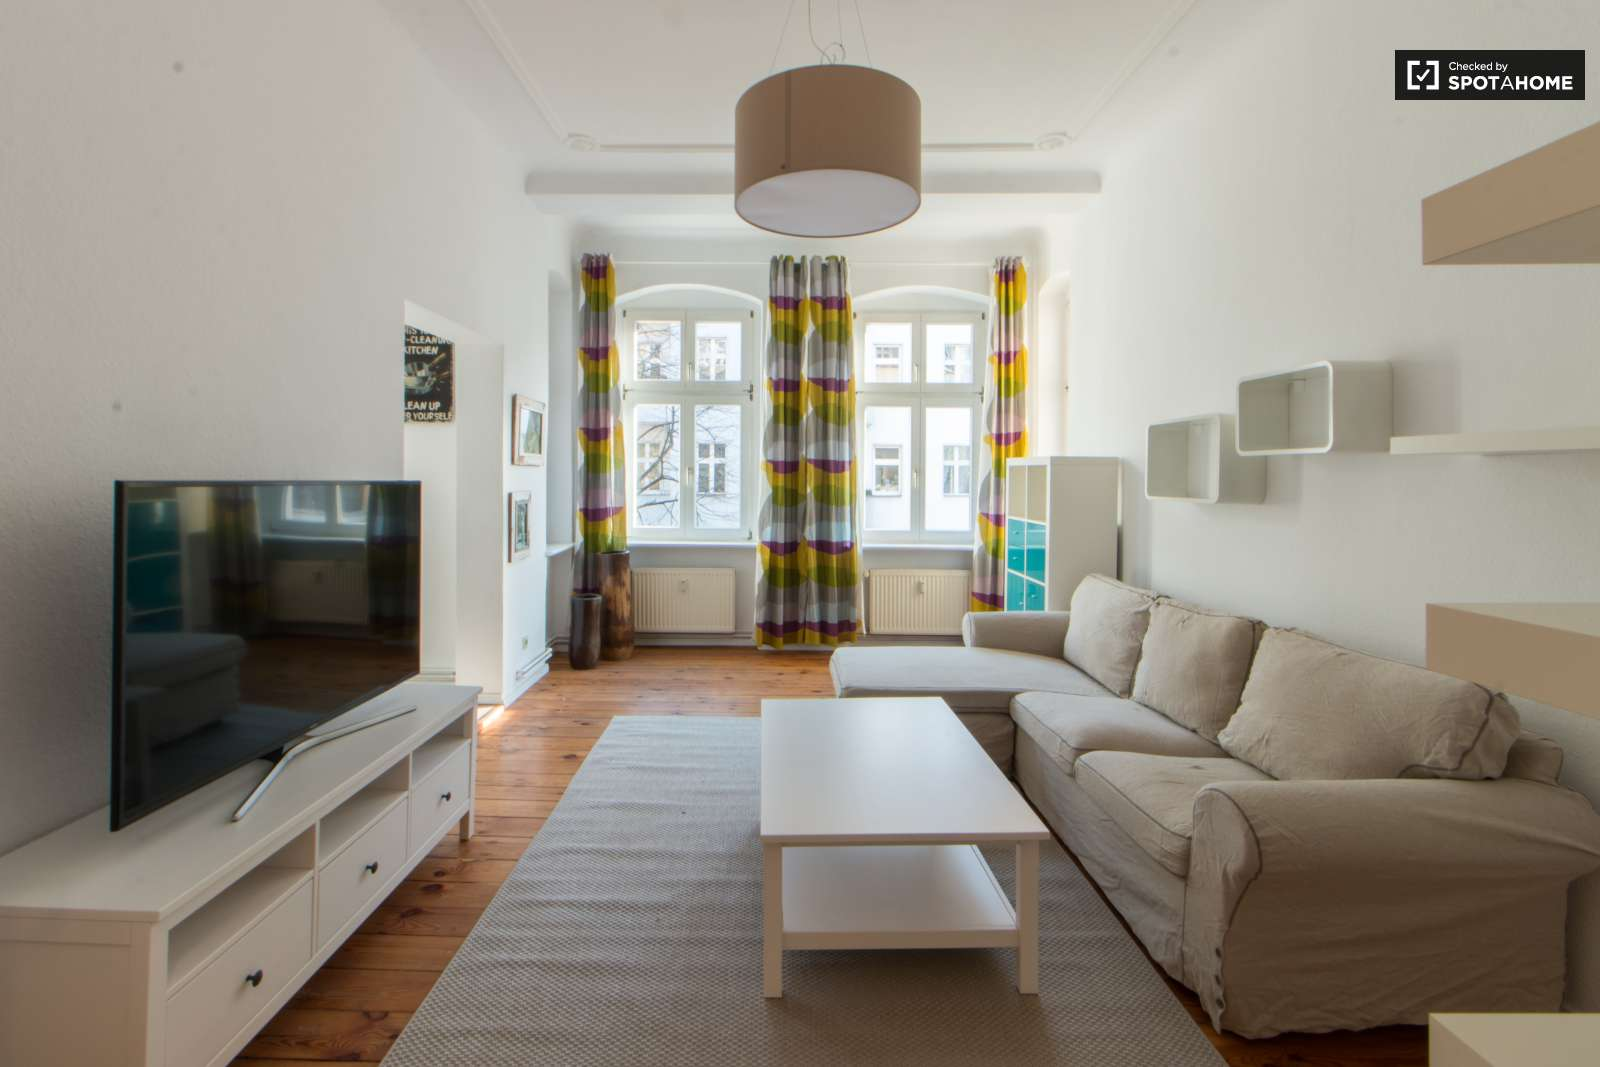 Cool 1-bedroom apartment for rent close to nightclubs in Friedrichshain